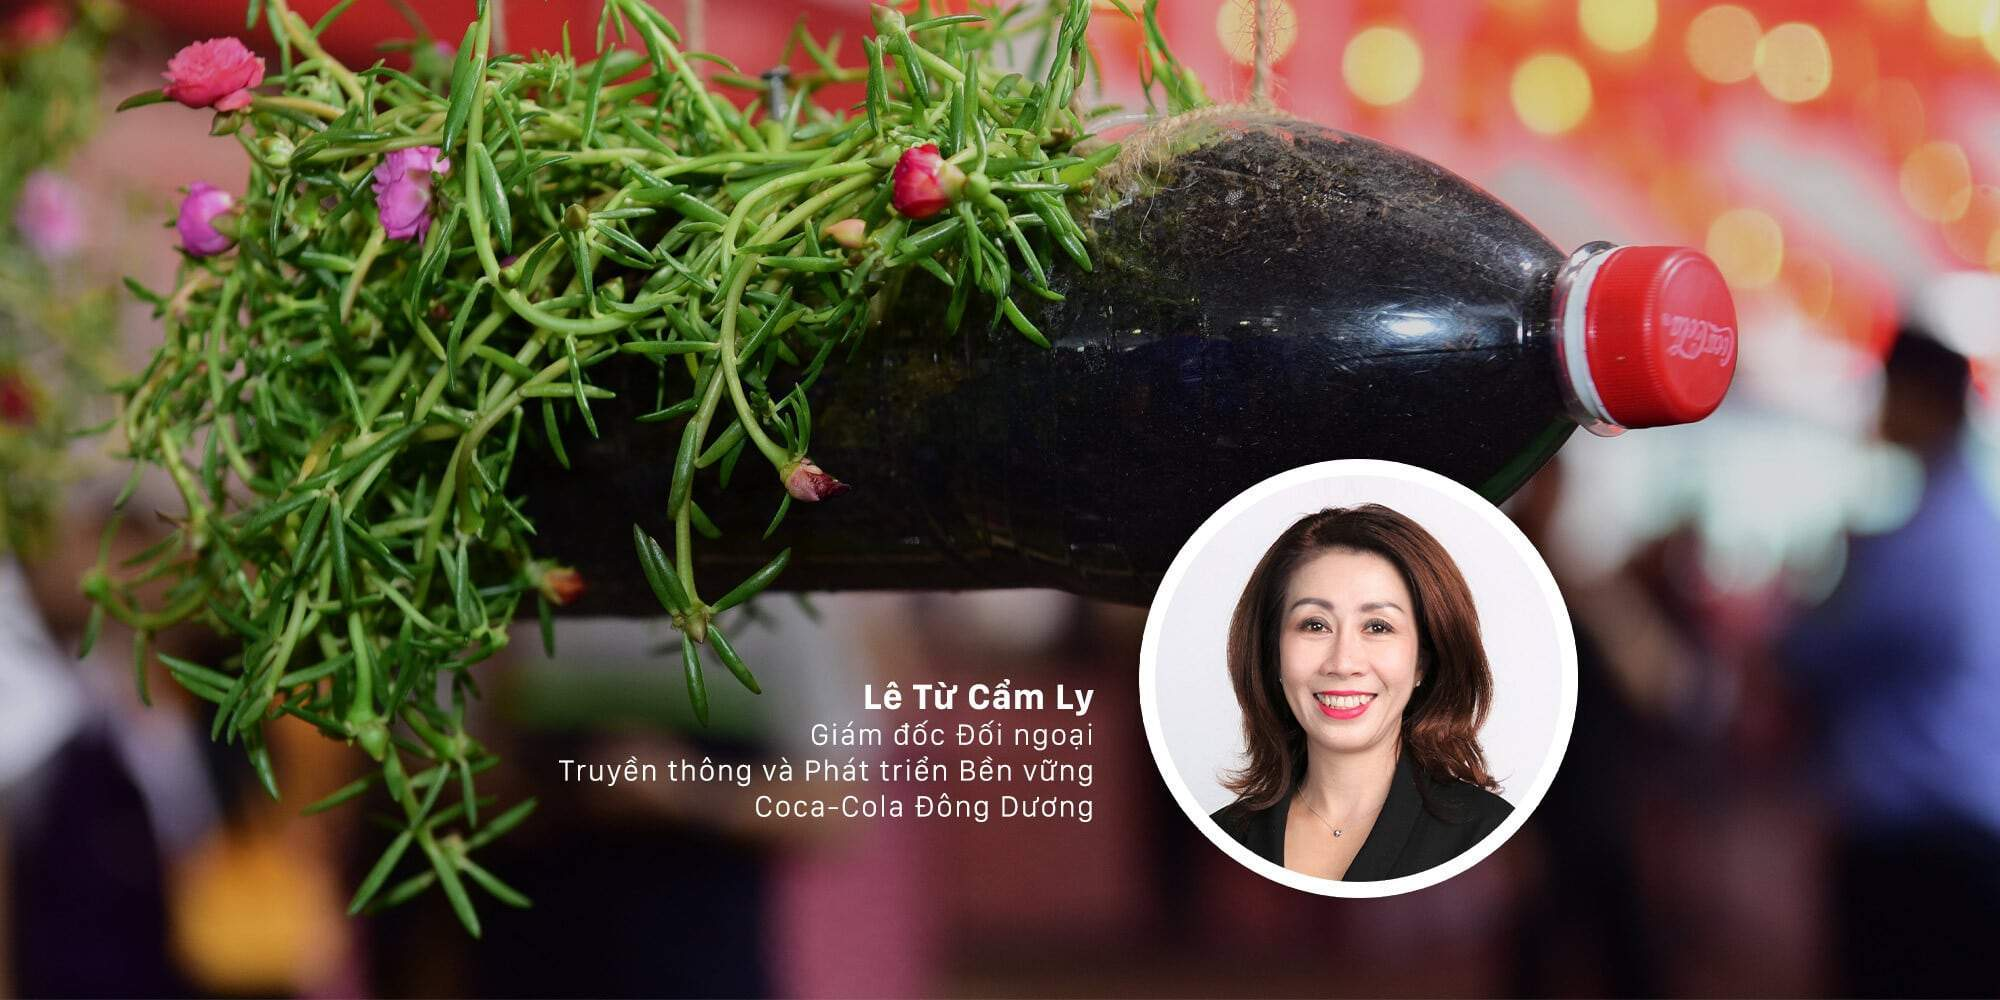 Coca-Cola's Director of Public Affairs On Building A Highly Effective CSR Program In Vietnam